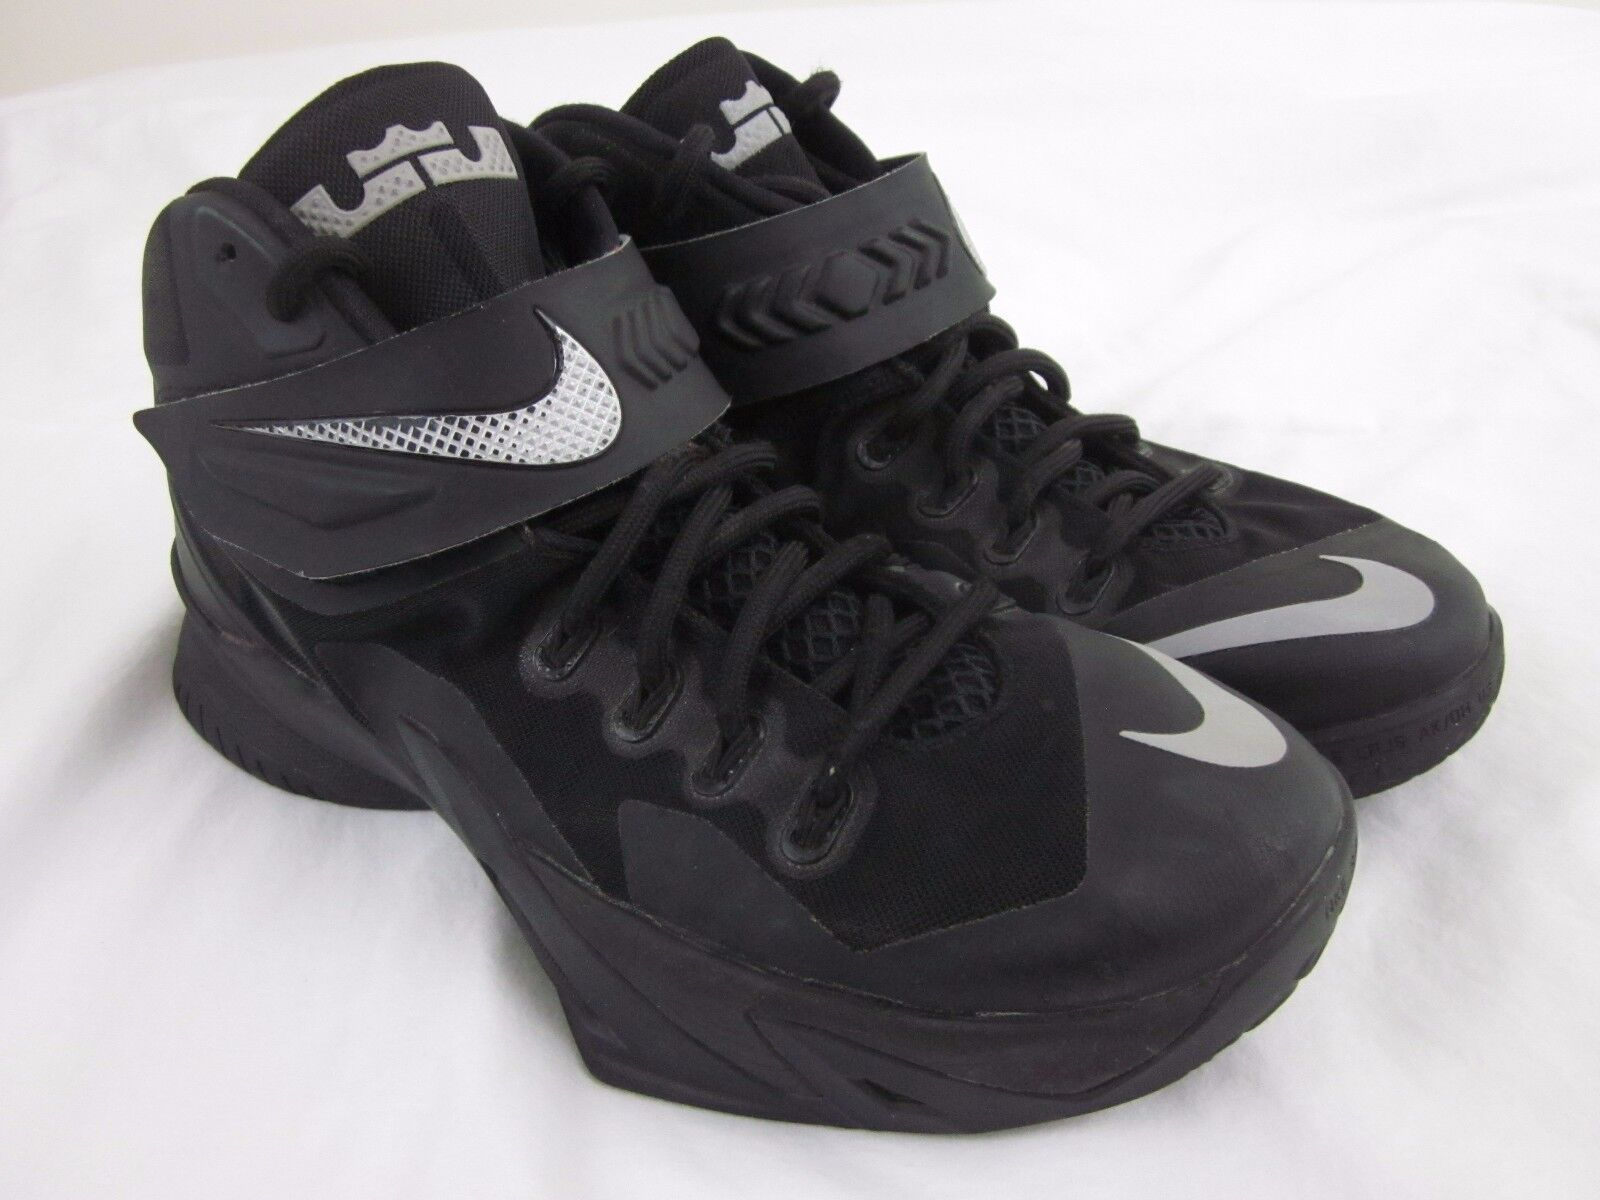 Nike Lebron Zoom Soldier 8.5 8 VIII Blackout Size 8.5 Soldier Black / Silver 653641-001 6d88b9